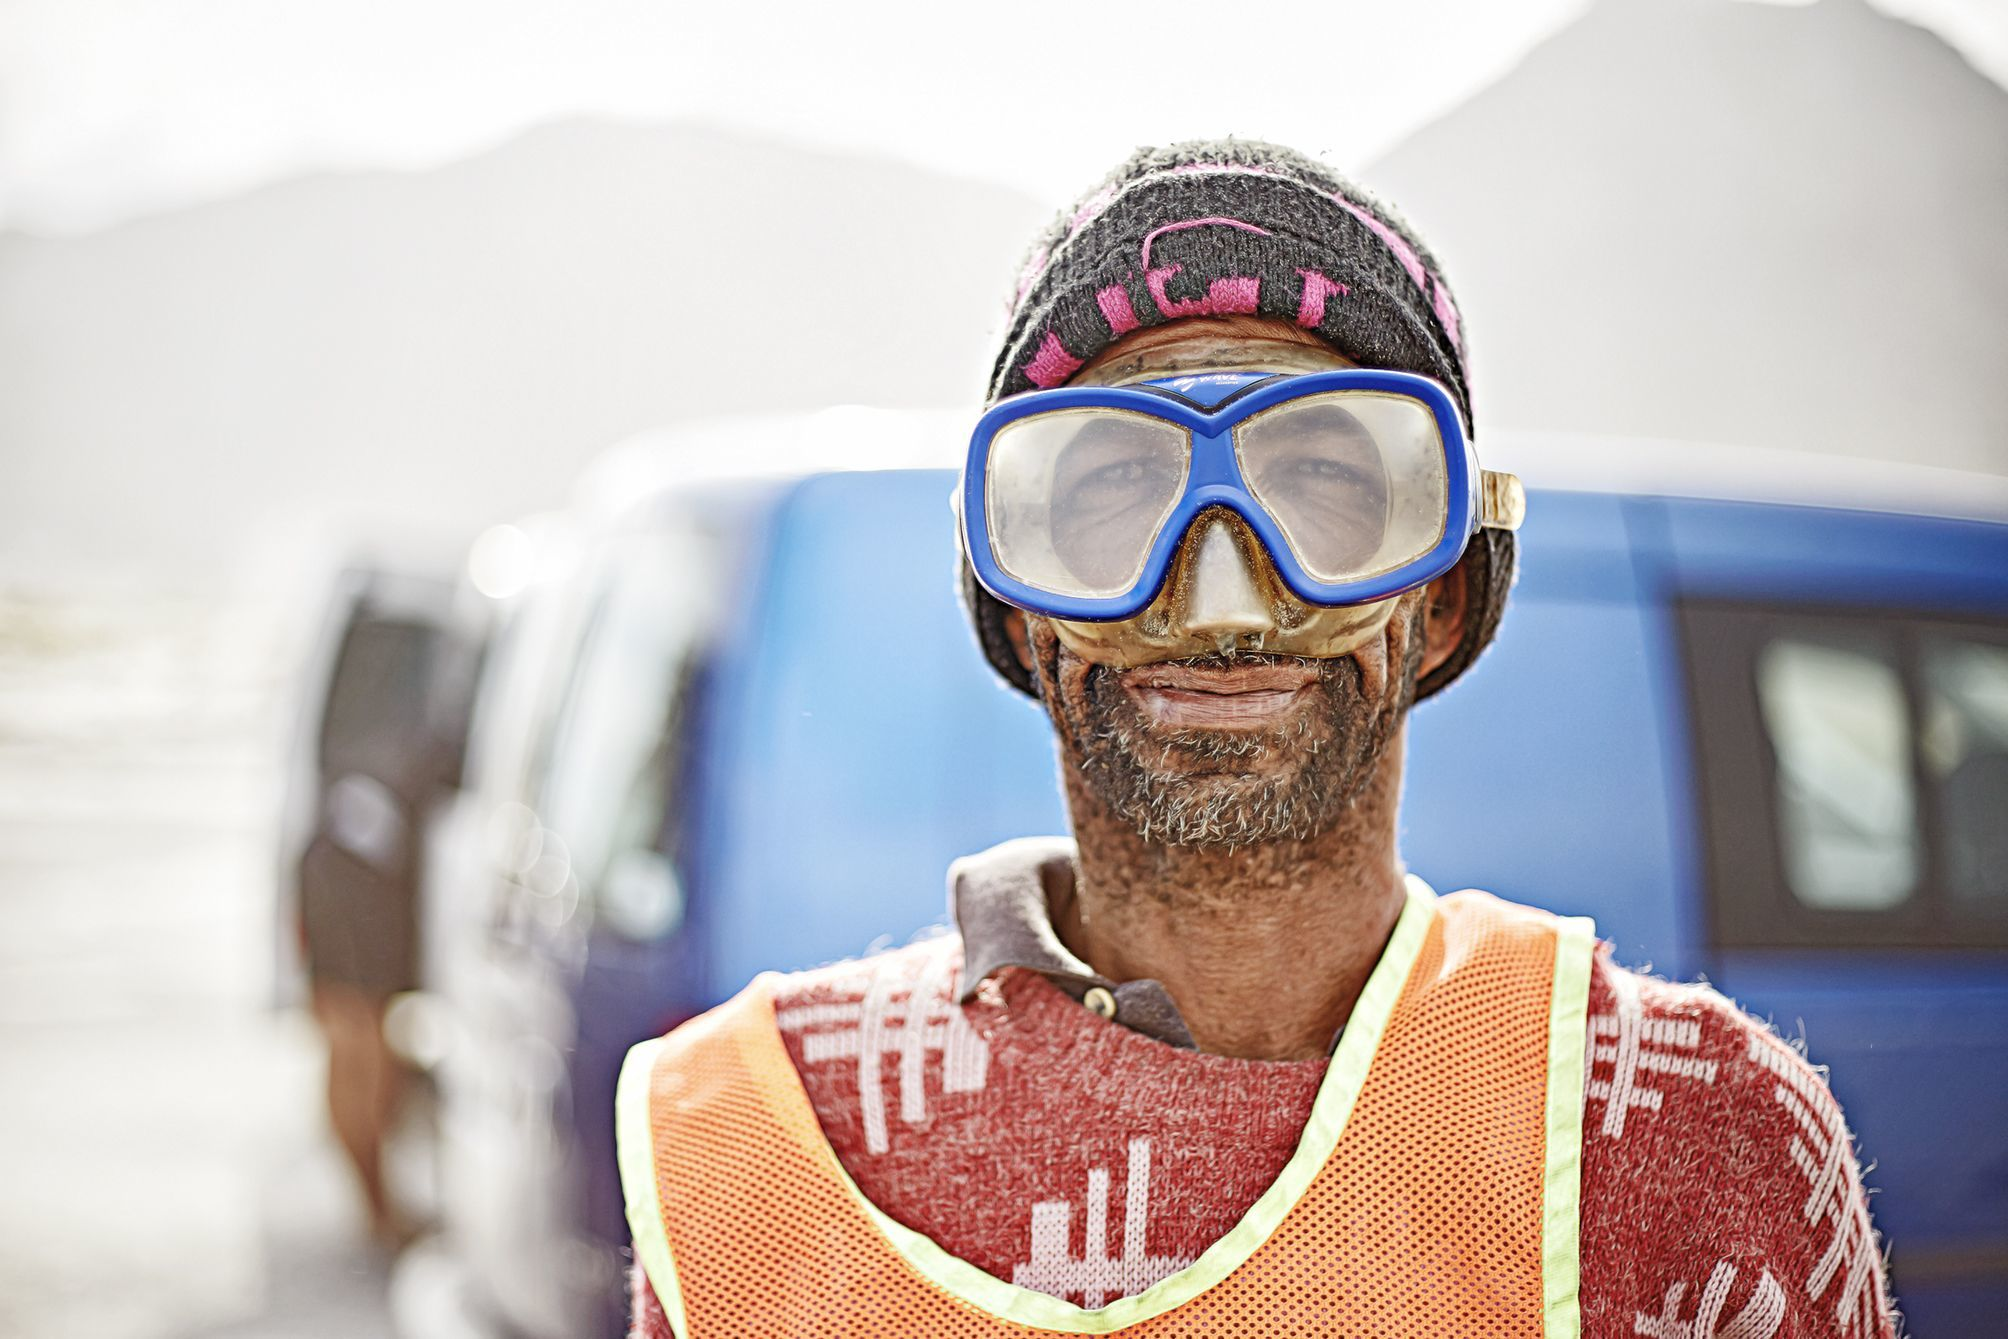 Portrait of David, the car guard at muizenberg kite sport sporting his underwater goggles, protecting him from the sand blasting.